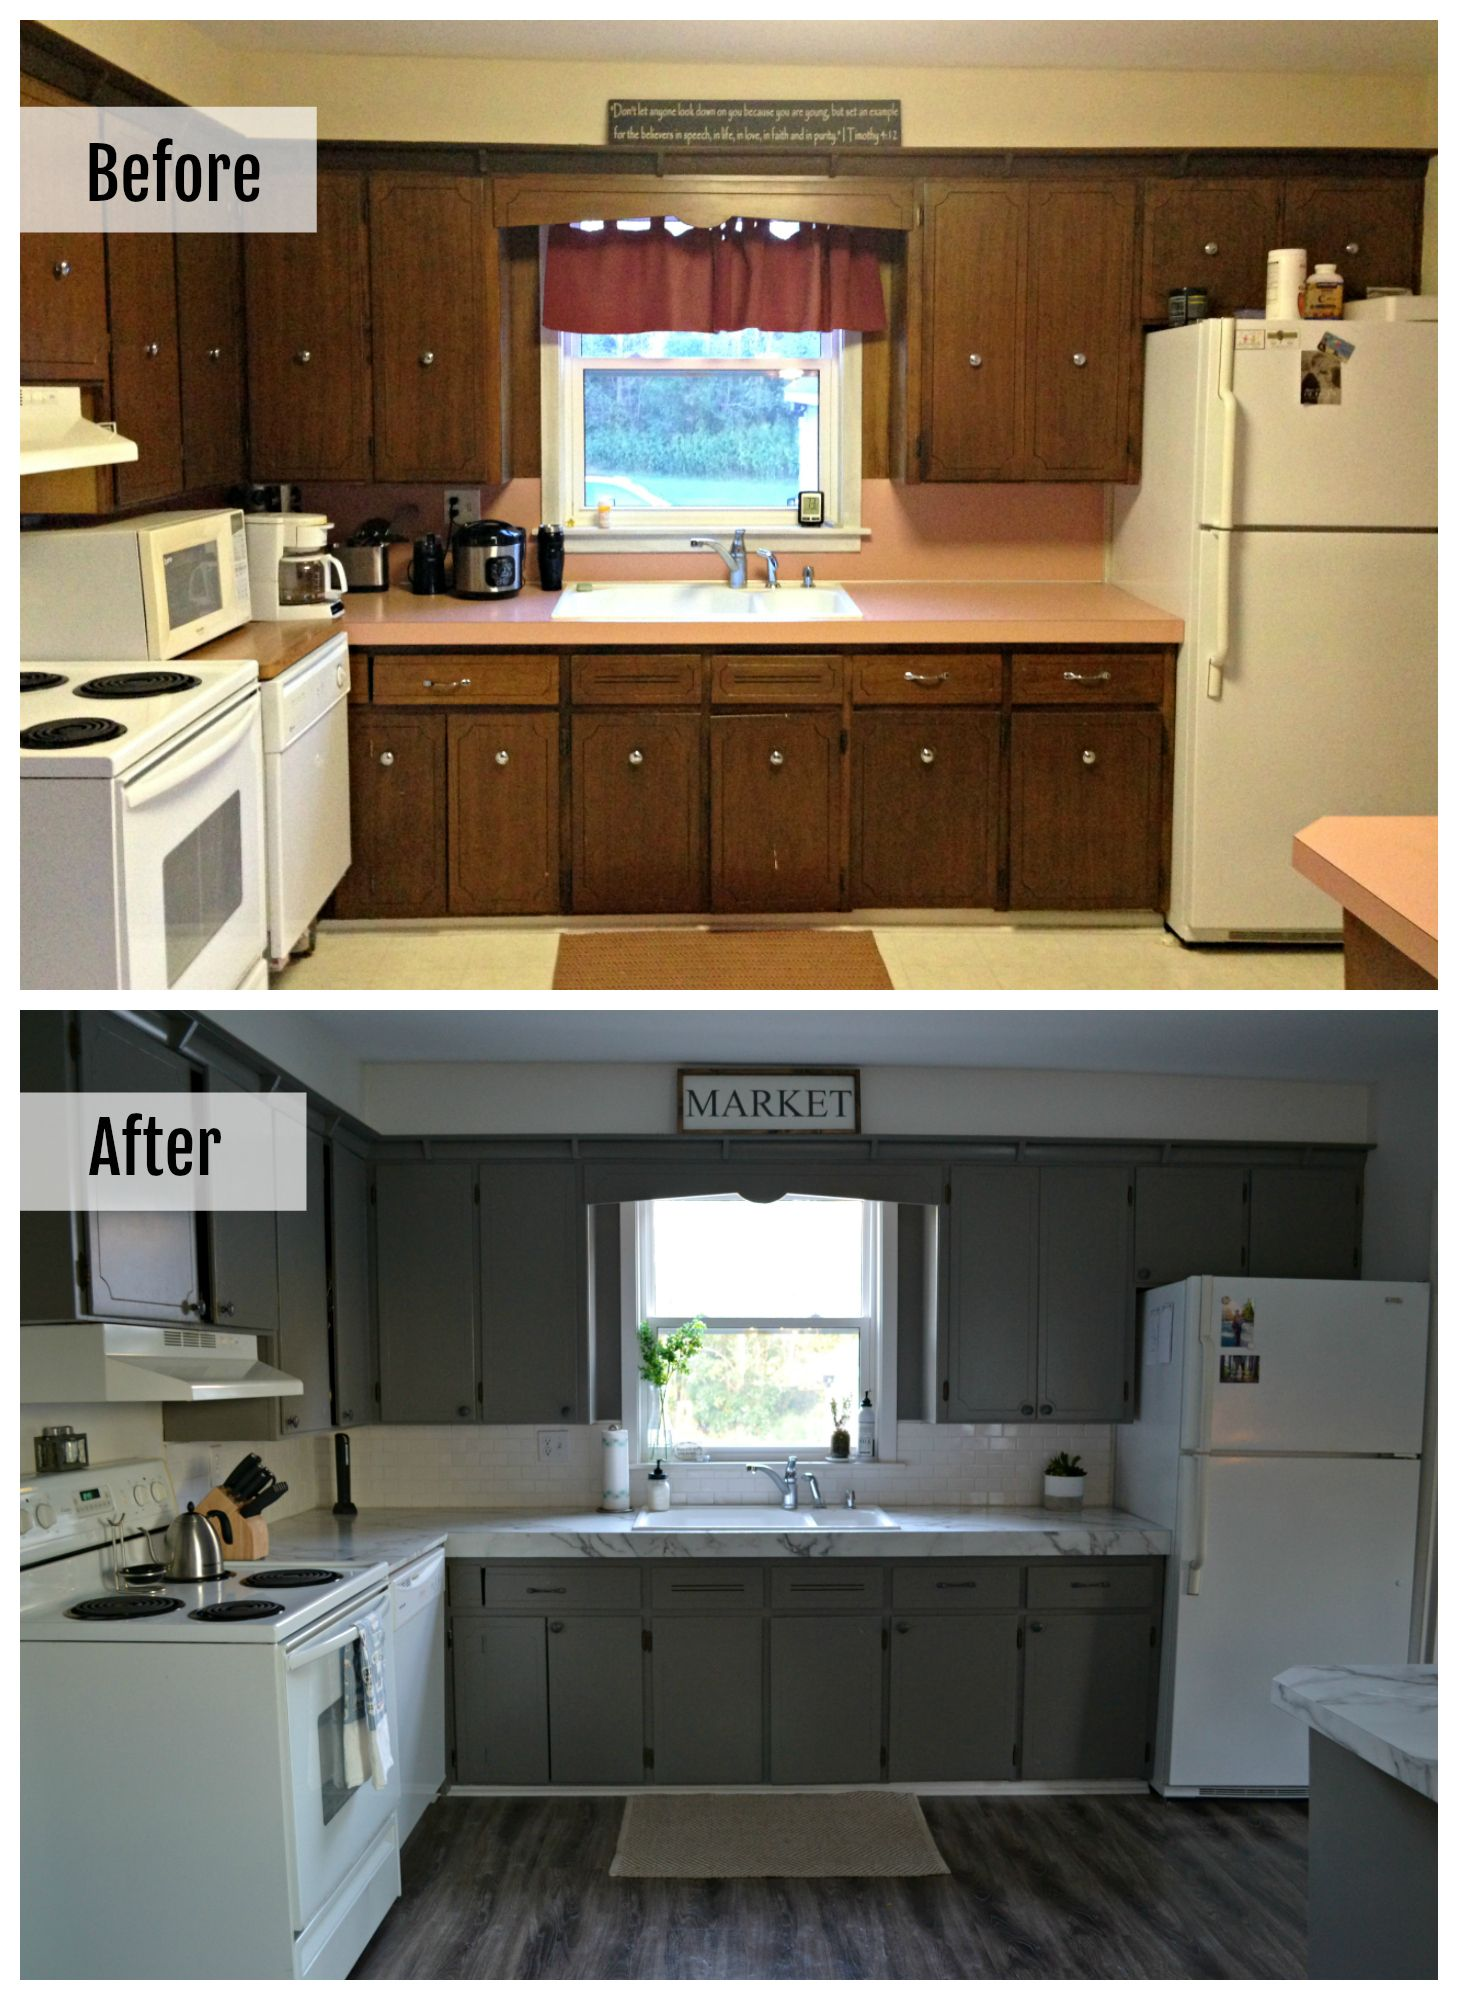 Our Darling Little Kitchen Remodel | Darling Little Life | Pinterest